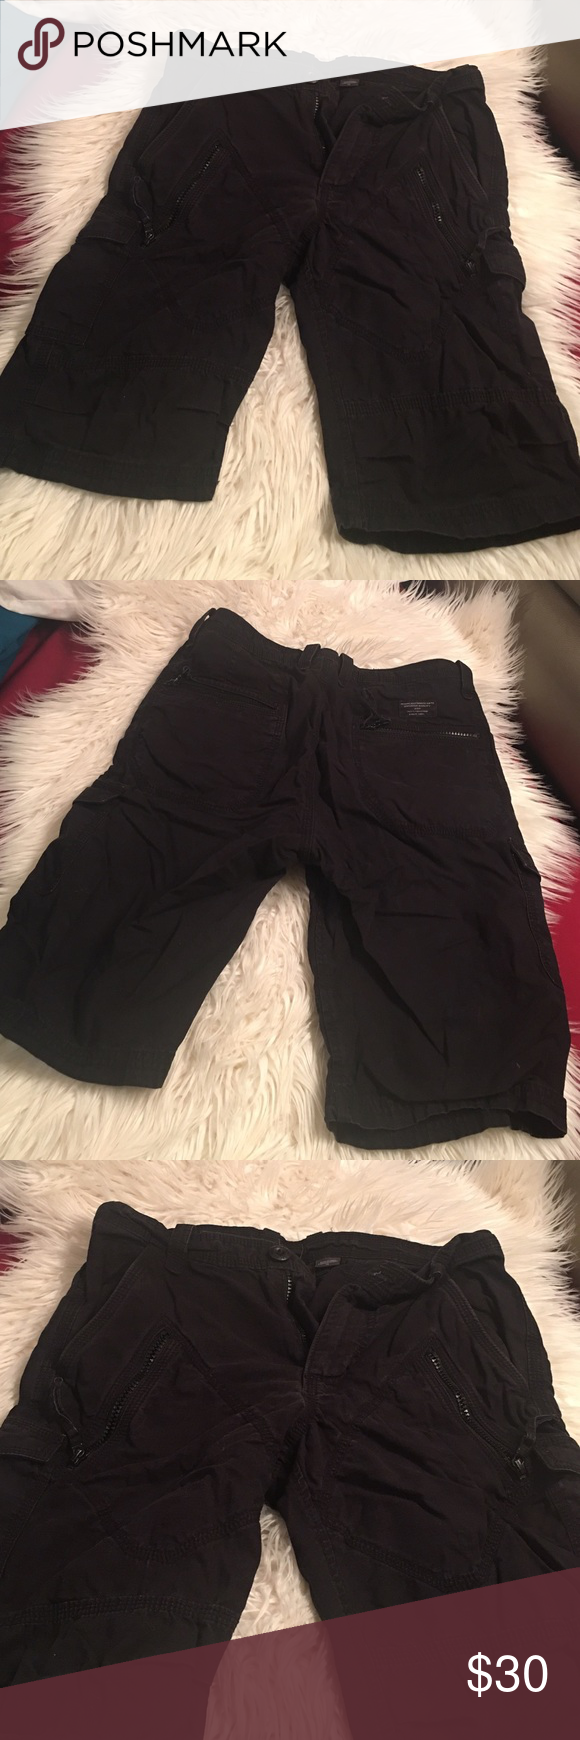 Armani Exchange Cargo shorts Has many pockets all black good used condition minor fading from washing sz 28 Armani Exchange Shorts Cargo